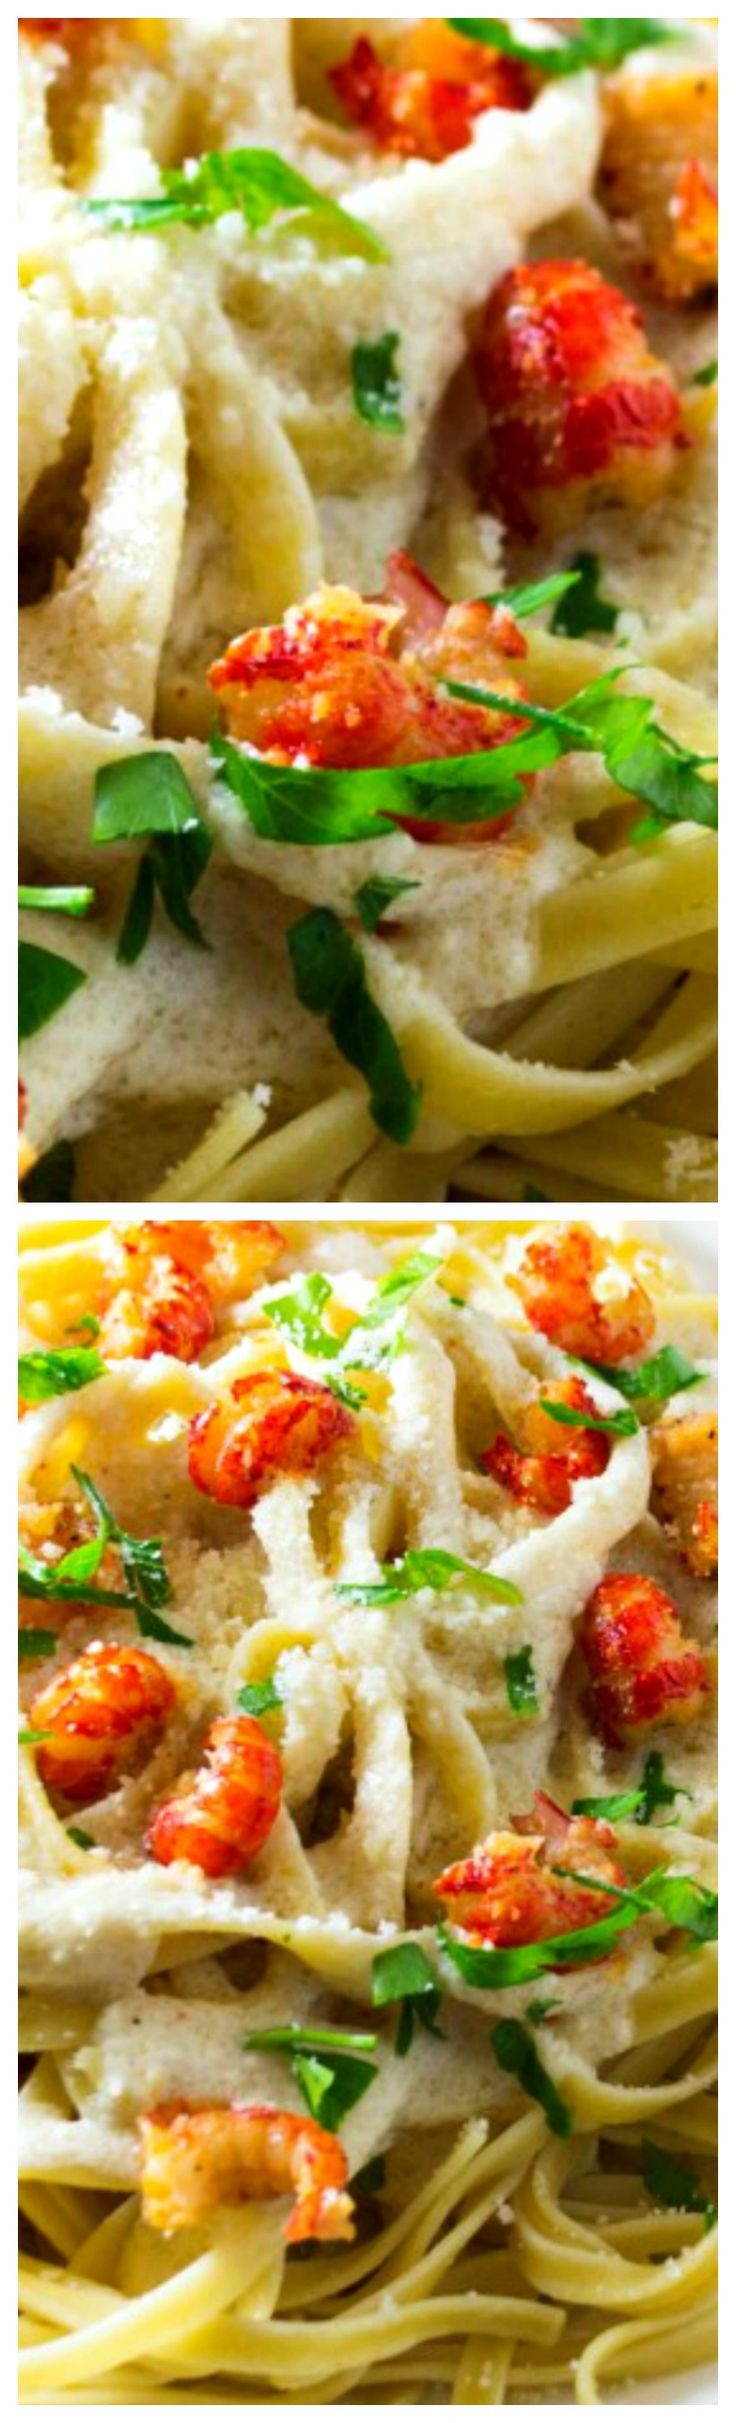 Crawfish Fettuccine Alfredo ~ Spice up homemade Fettuccine Alfredo by adding in tender, delicious crawfish and a healthy dash of Cajun seasoning... Perfect!